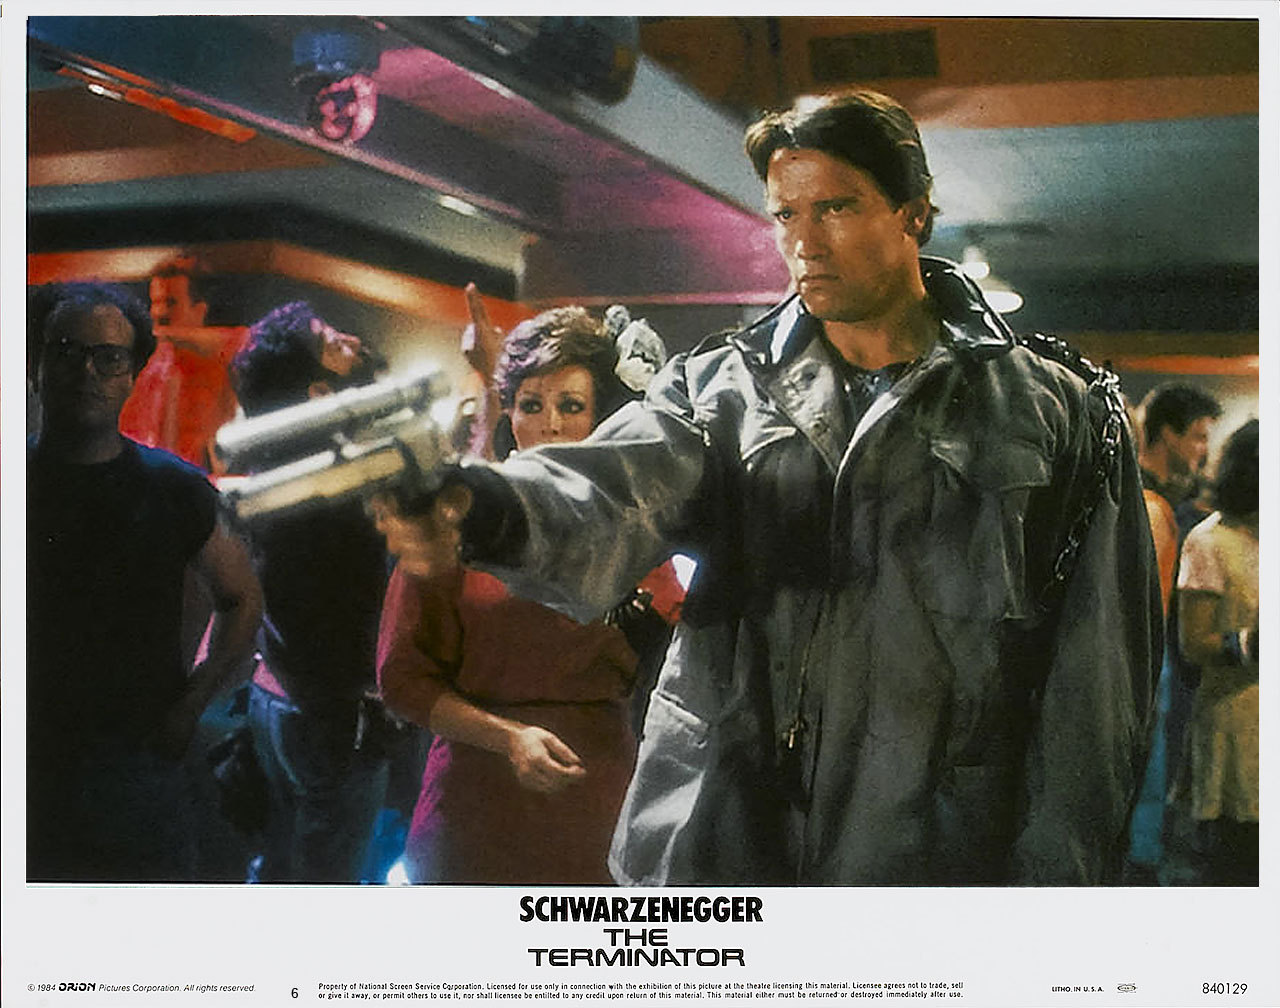 The Terminator, US lobby card. 1984